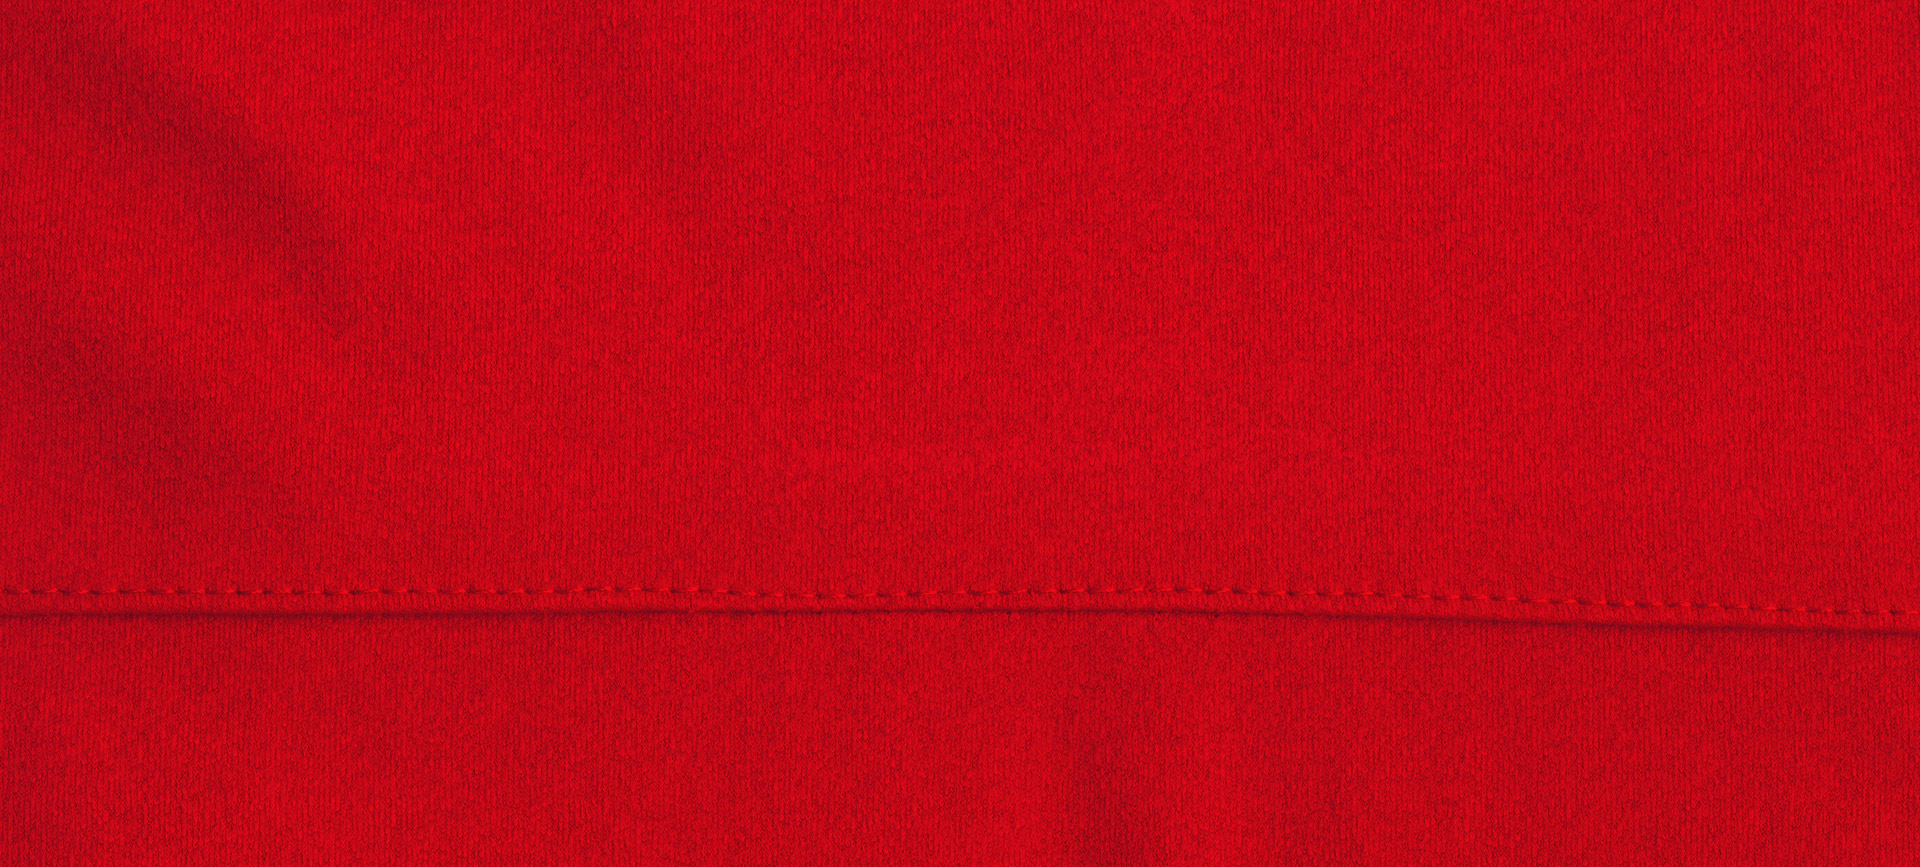 Download Wallpaper Iphone X Red Cloth With Seam Free Stock Photo Public Domain Pictures